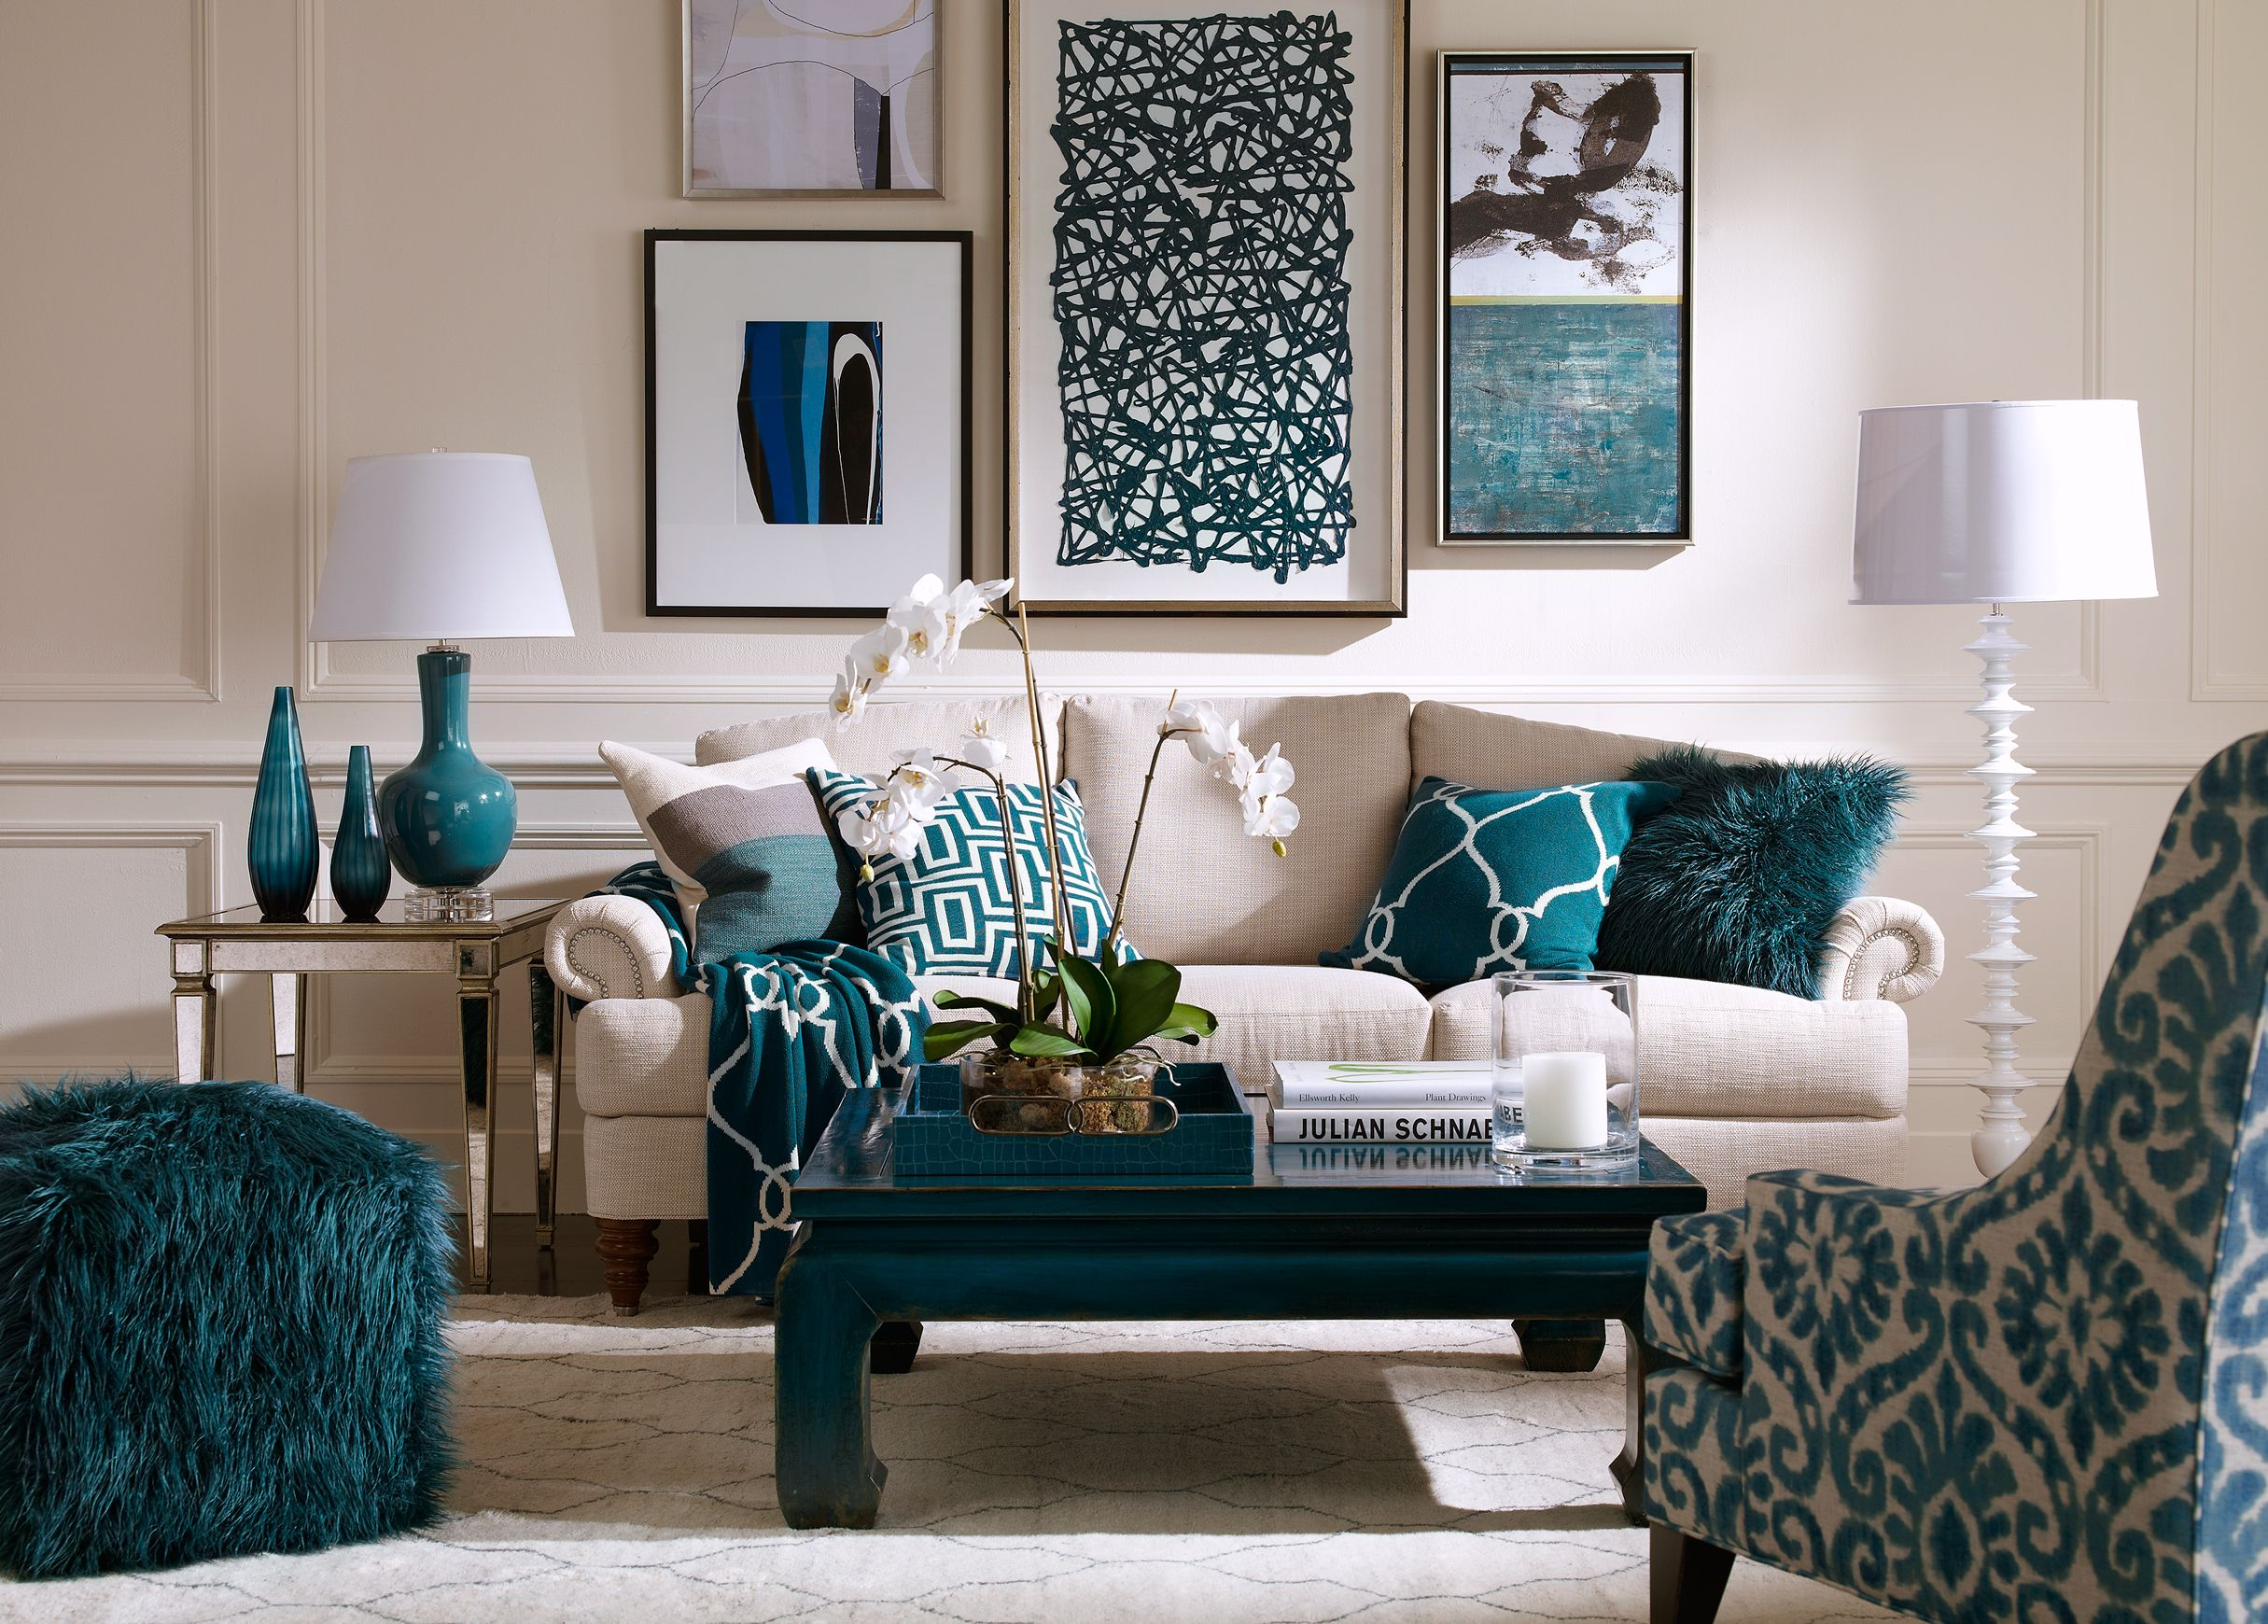 redecorate living room farmhouse ideas 15 best images about turquoise decorations house dining rooms accessories using in decorating with accents